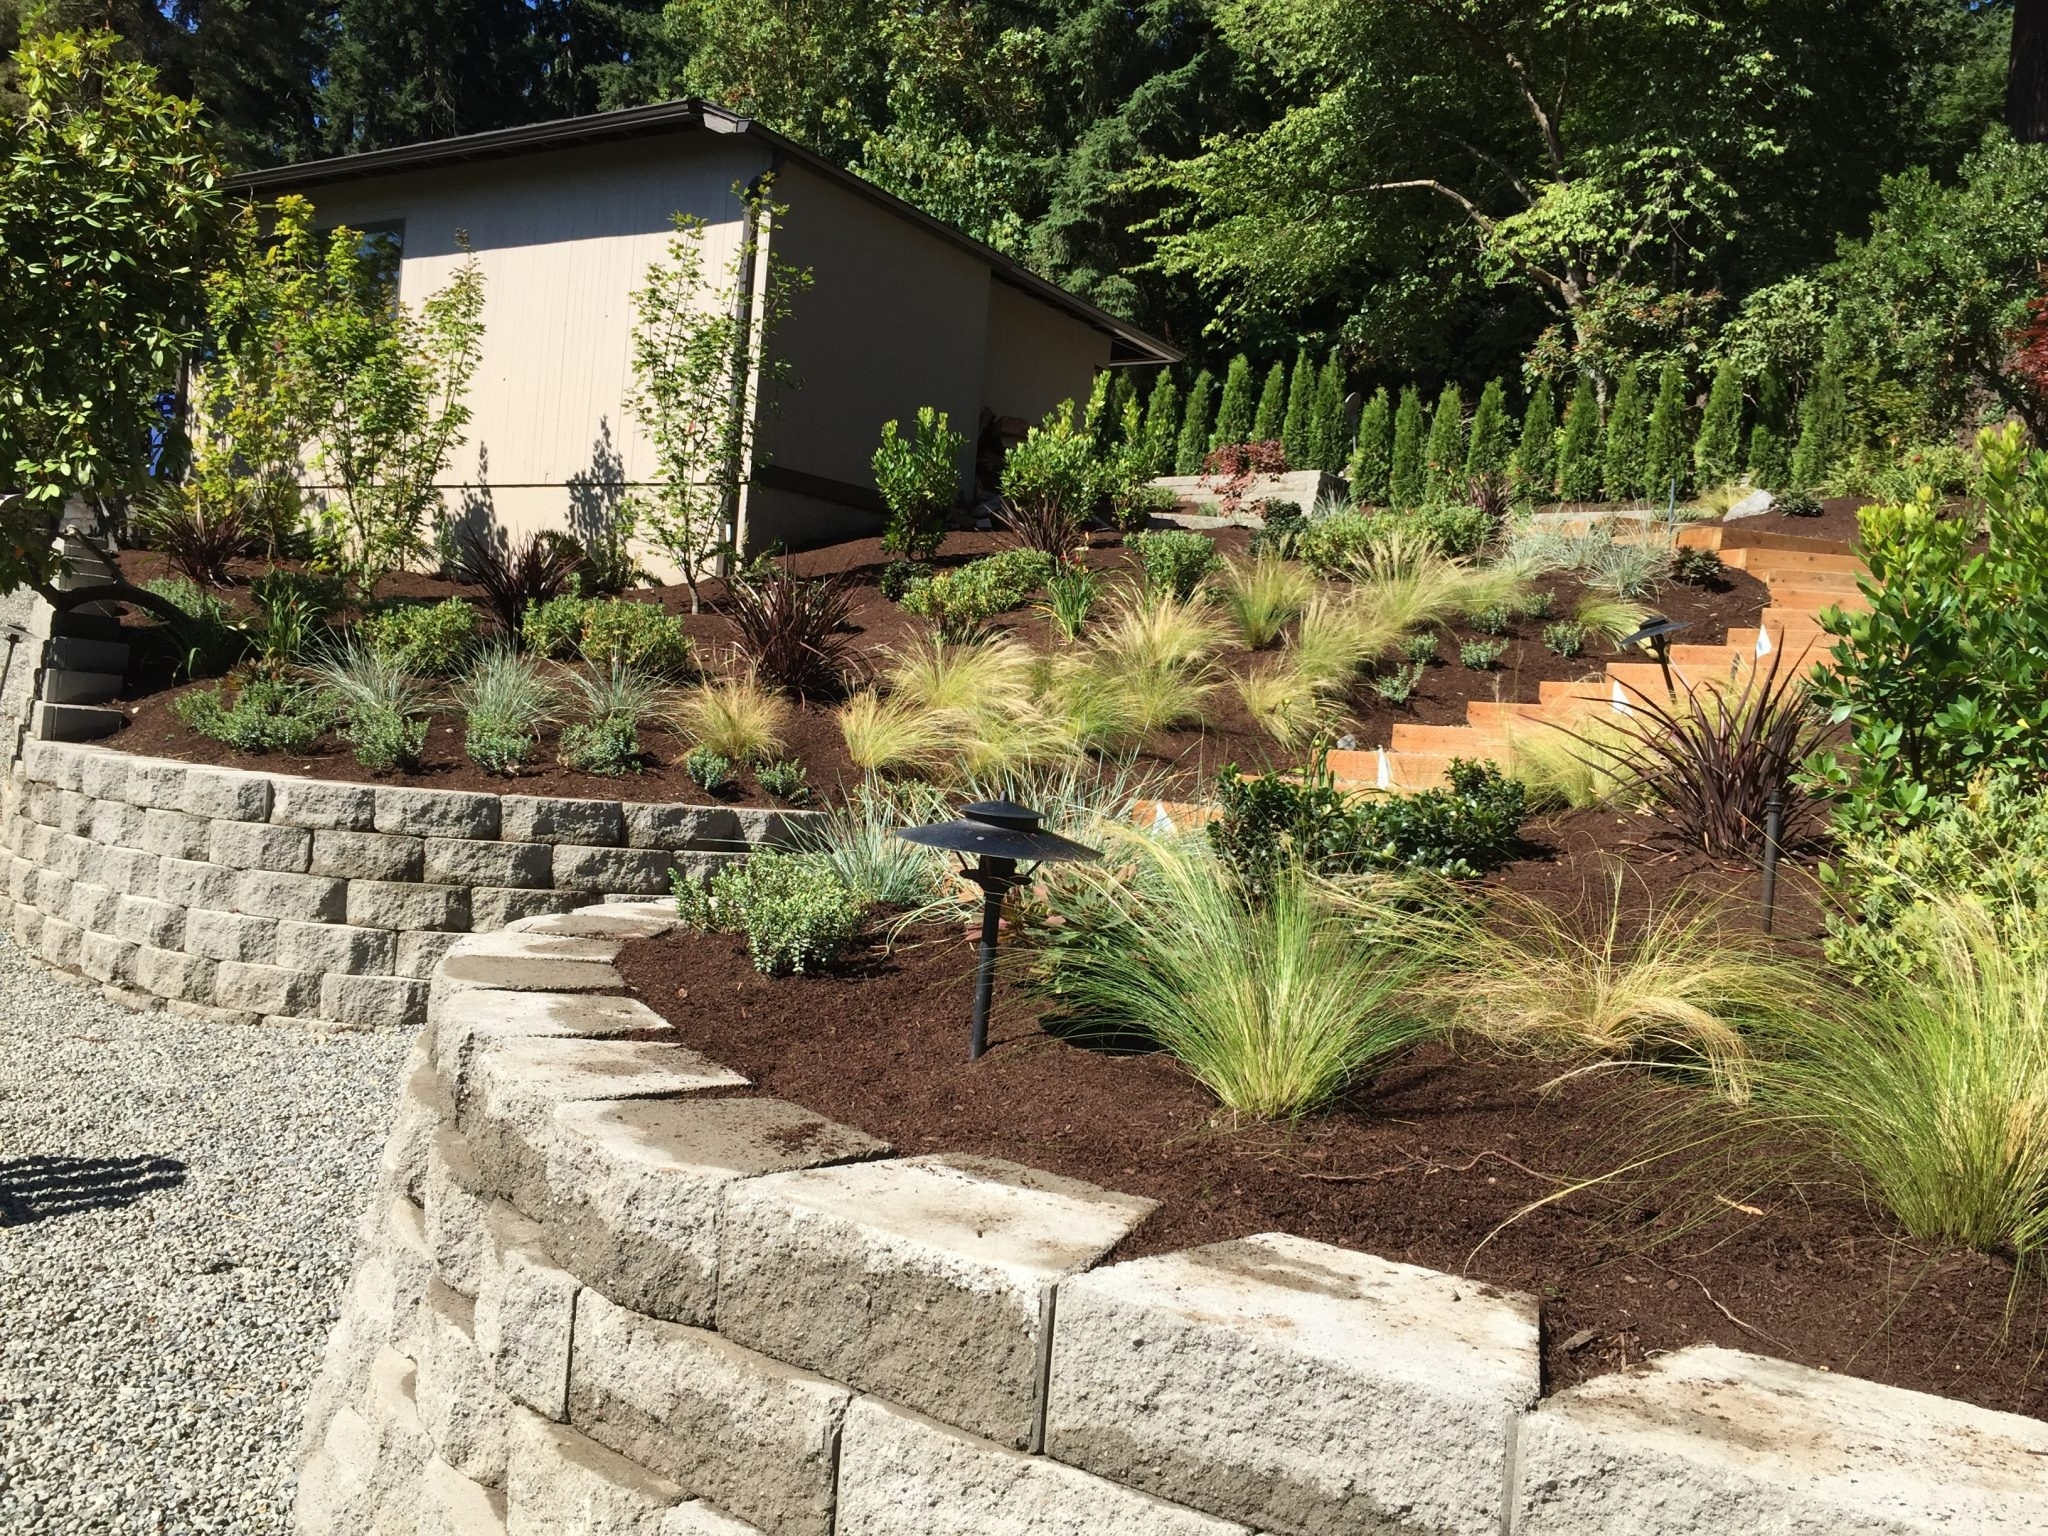 Sustainable Design Gardenworkz Outdoor Living In Drought Tolerant Landscaping Amazing Drought Tolerant Landscaping